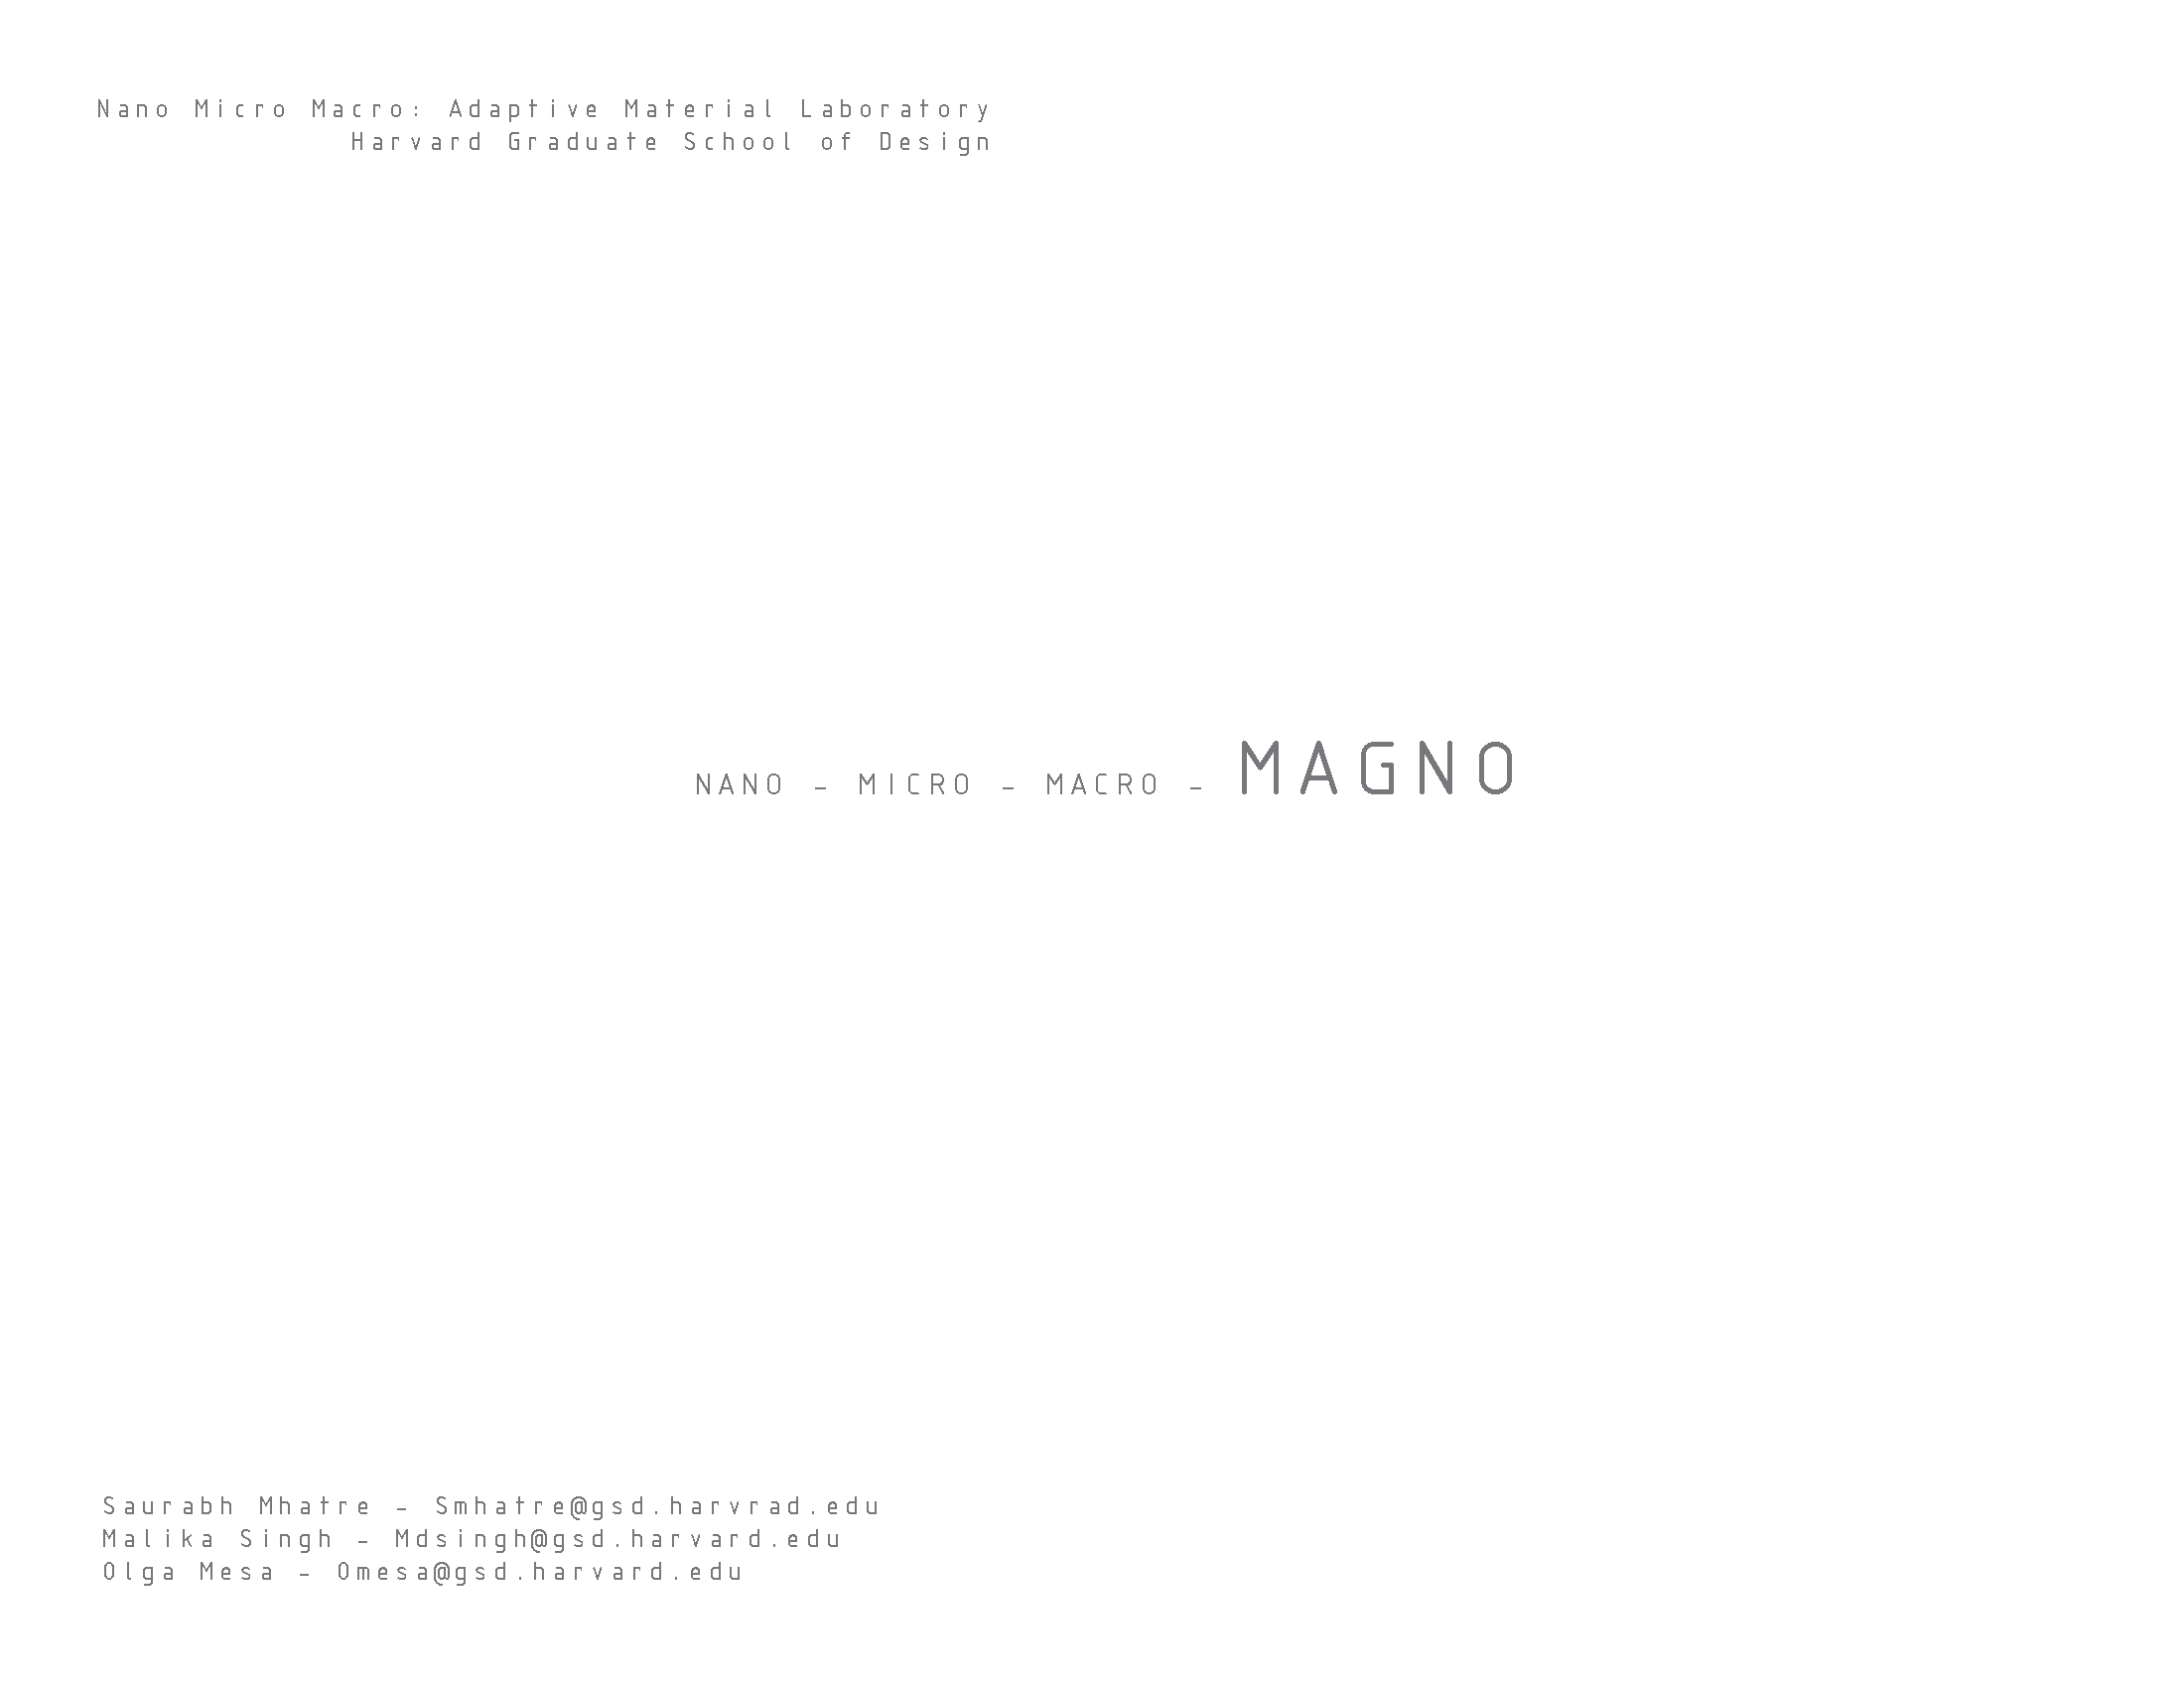 Magno Final Presentation_Page_01.png